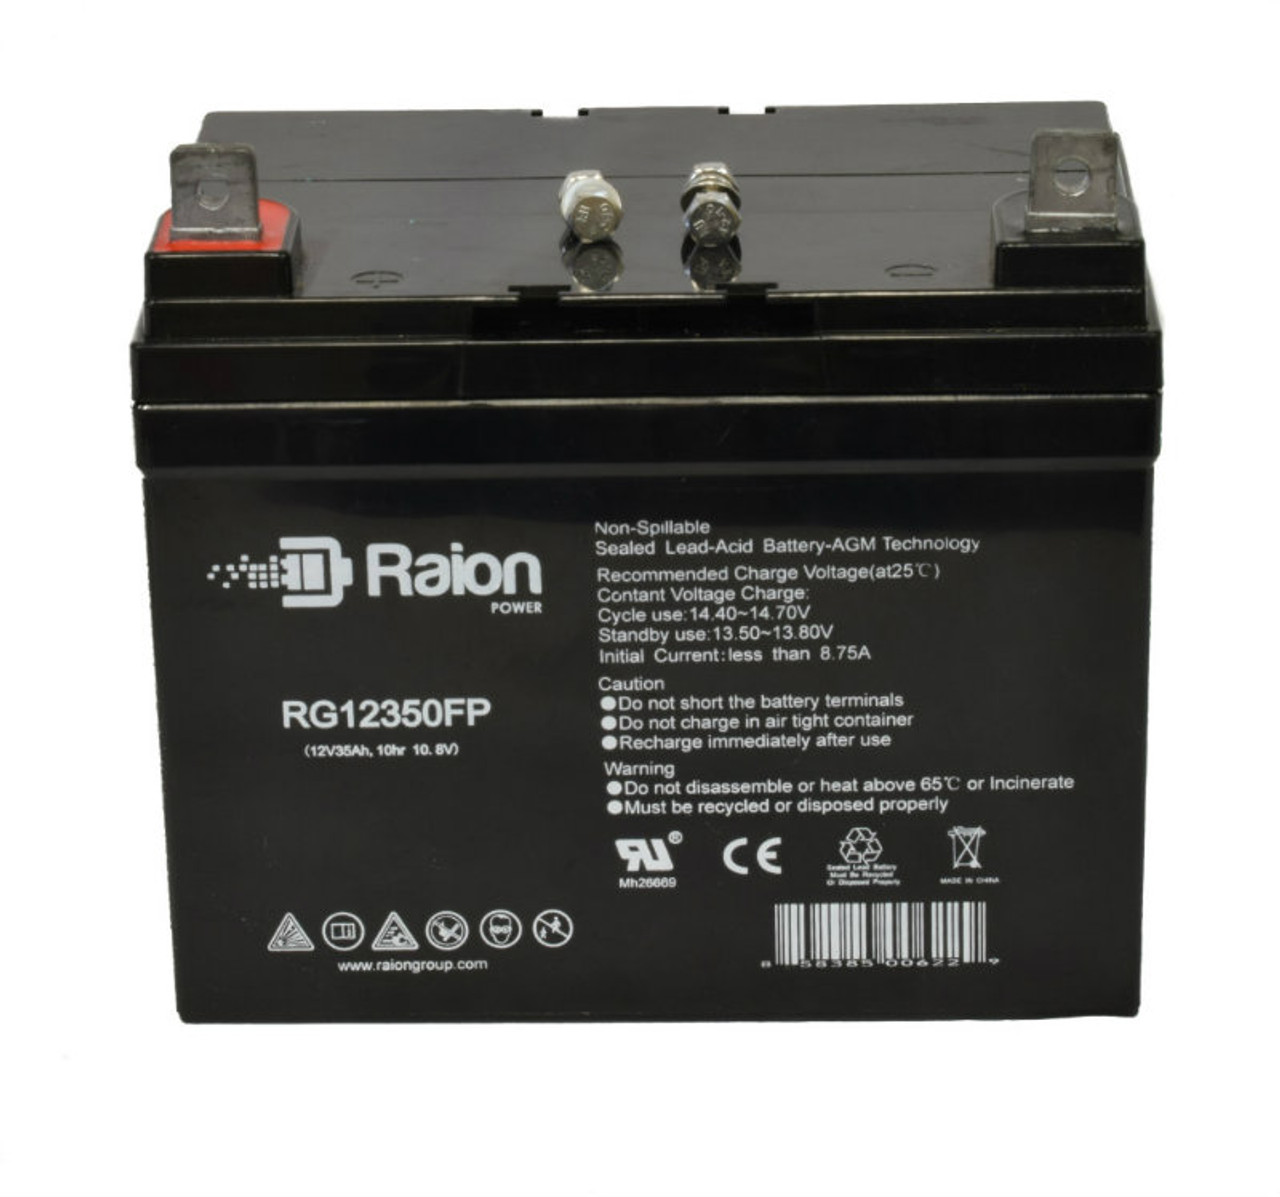 RG12350FP Sealed Lead Acid Battery Pack For Electric Mobility Lil Viva 250 PC Mobility Scooter